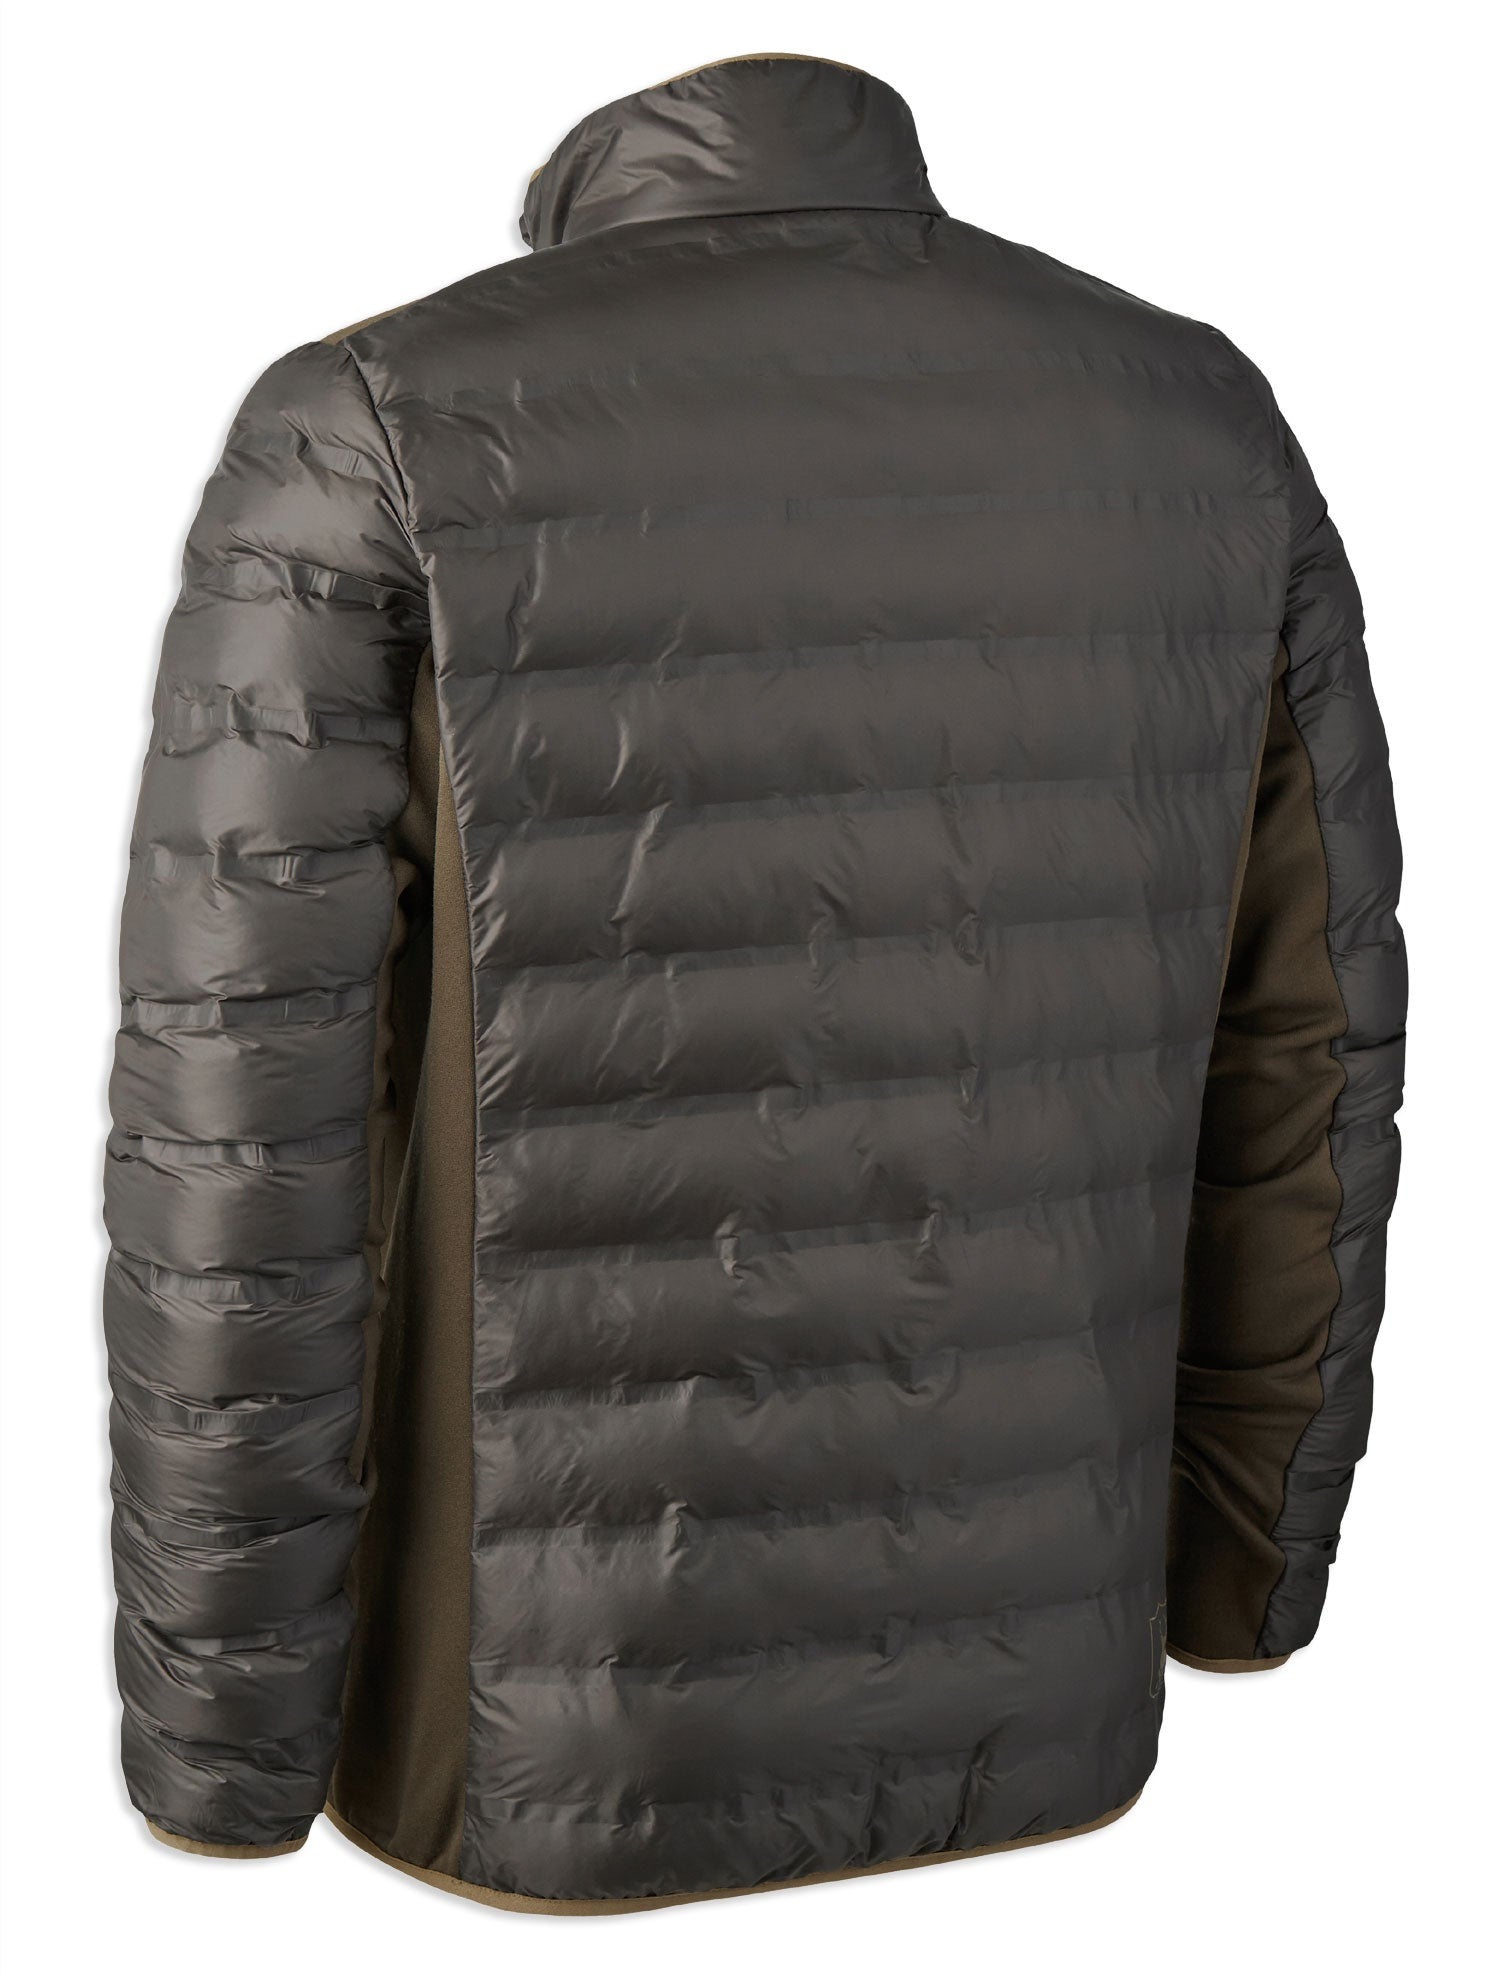 Rear View Deerhunter Deer Padded Jacket